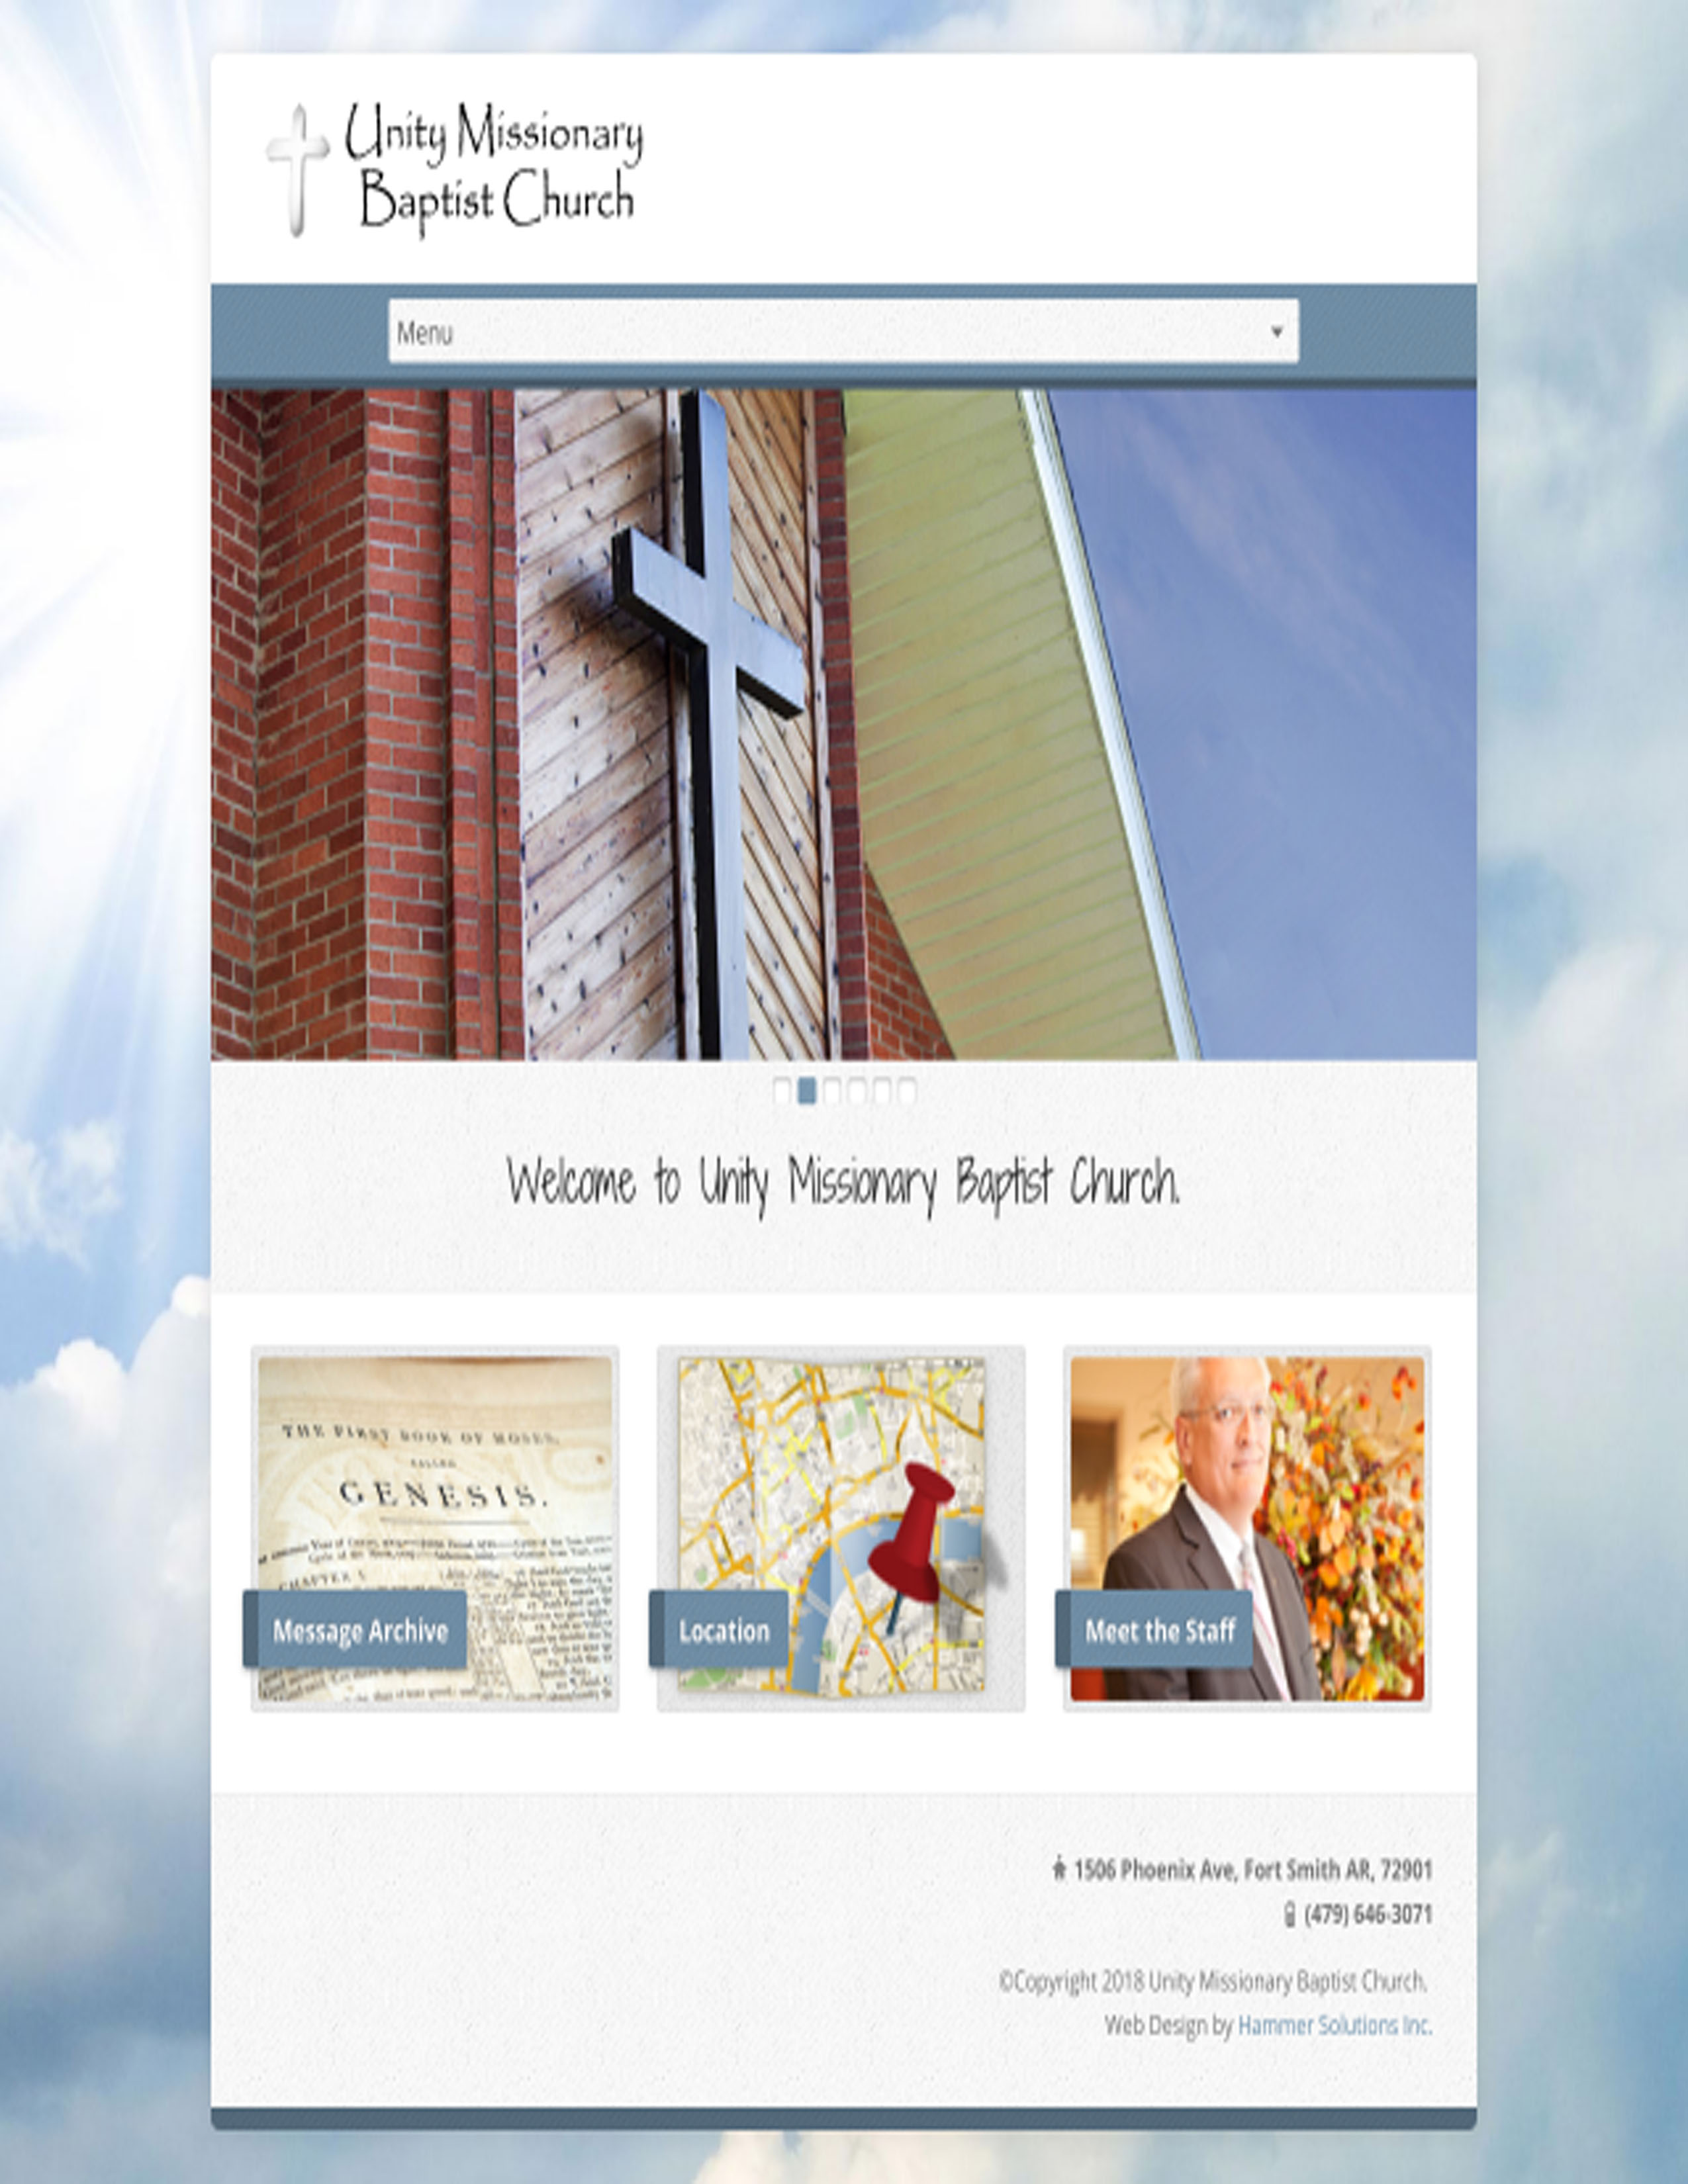 Unity Missionary Baptist Church Fort Smith Arkansas Hammer Solutions Website Design Web Design Web Development